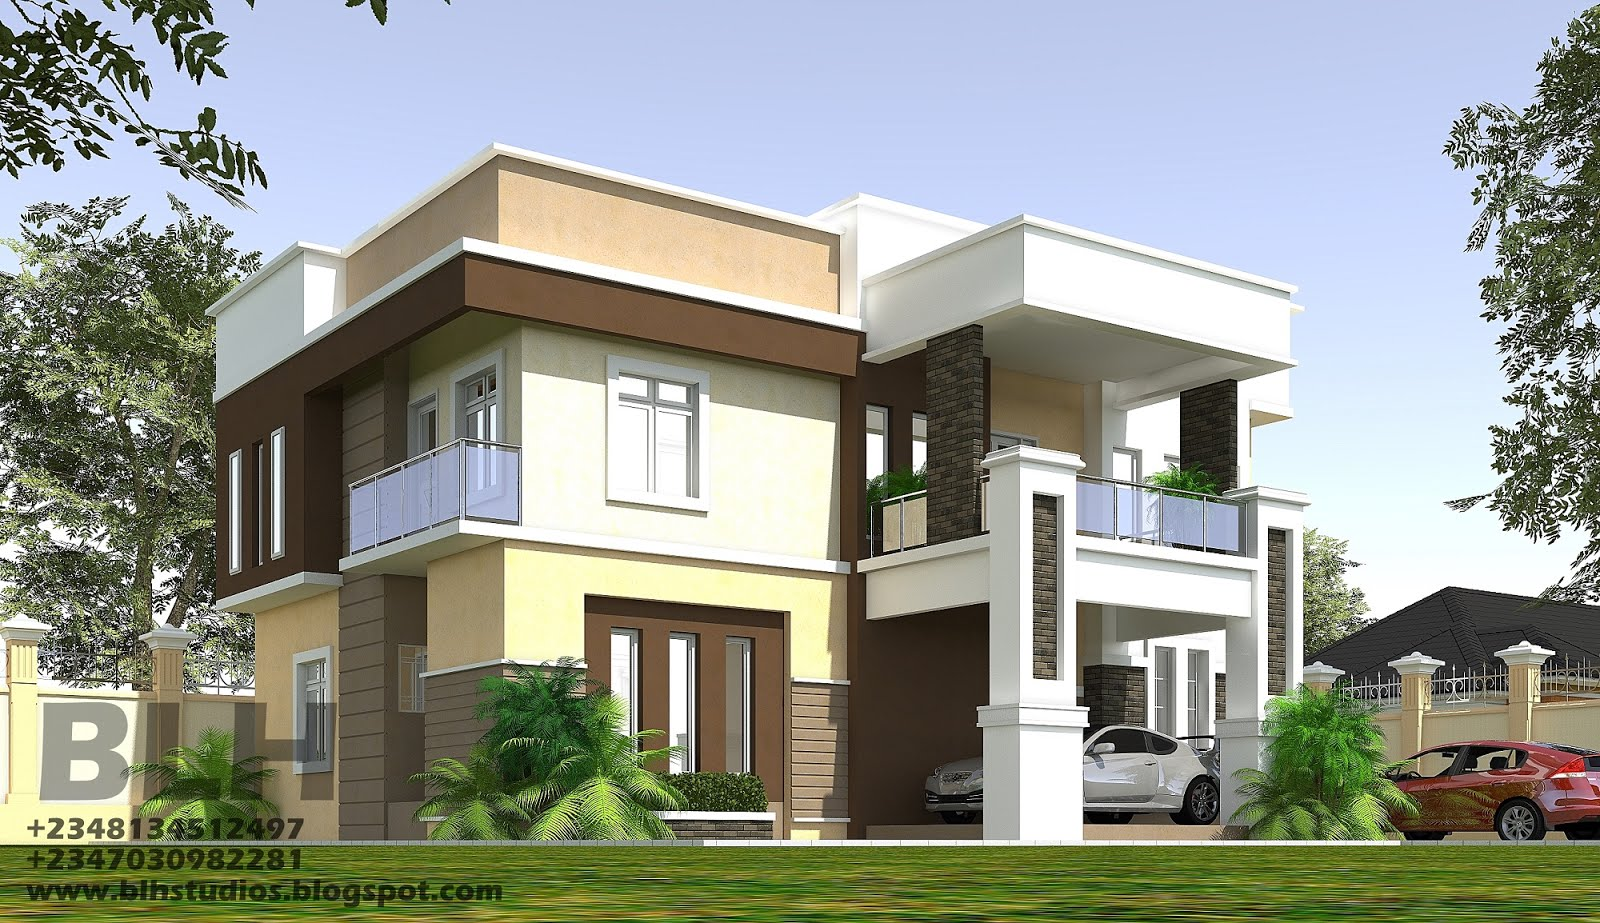 Architectural designs by blacklakehouse 2 bedroom for 2 bhk bungalow designs